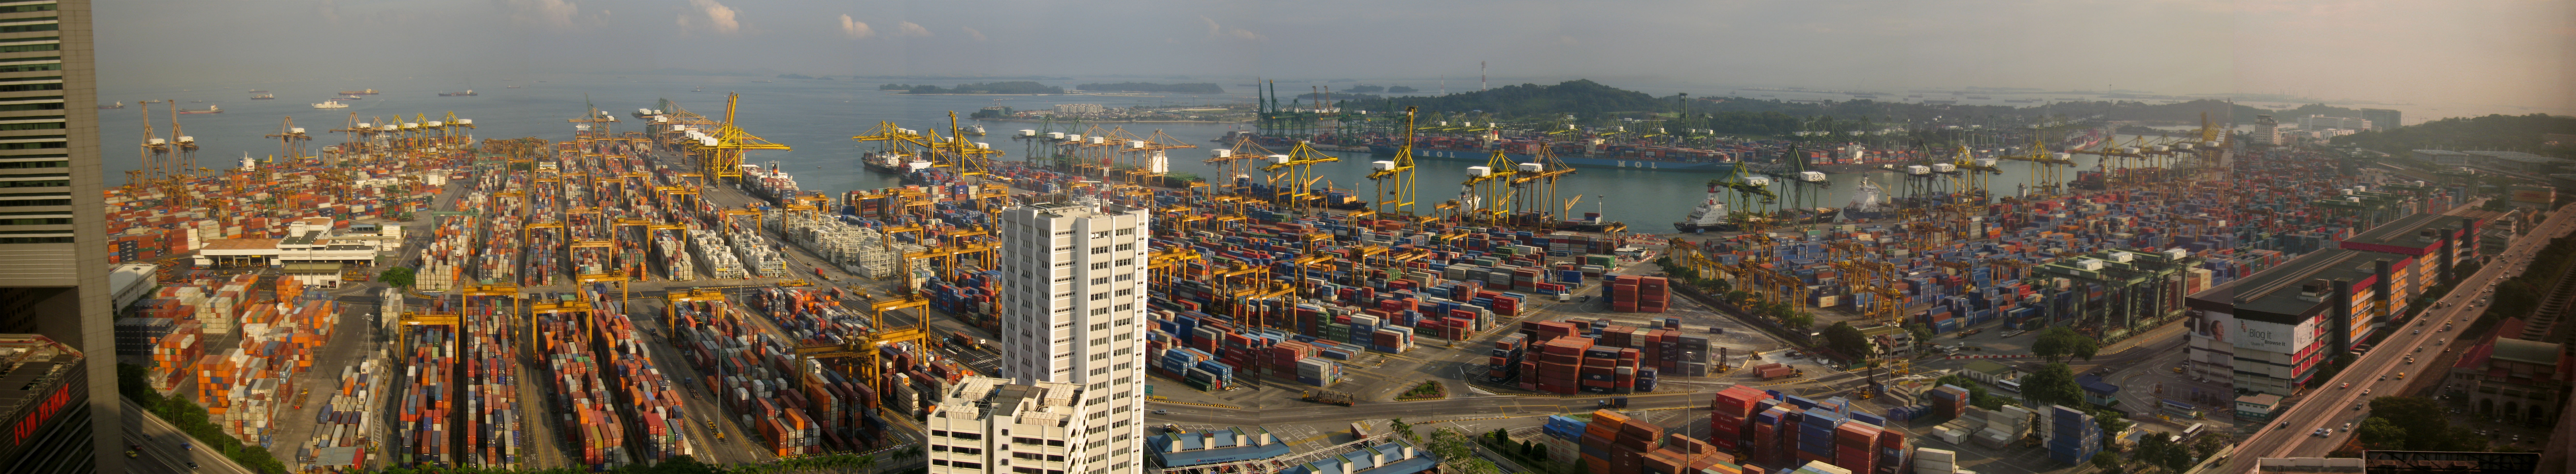 Keppel Container Terminal in Singapore (credit: Kroisenbrunner).